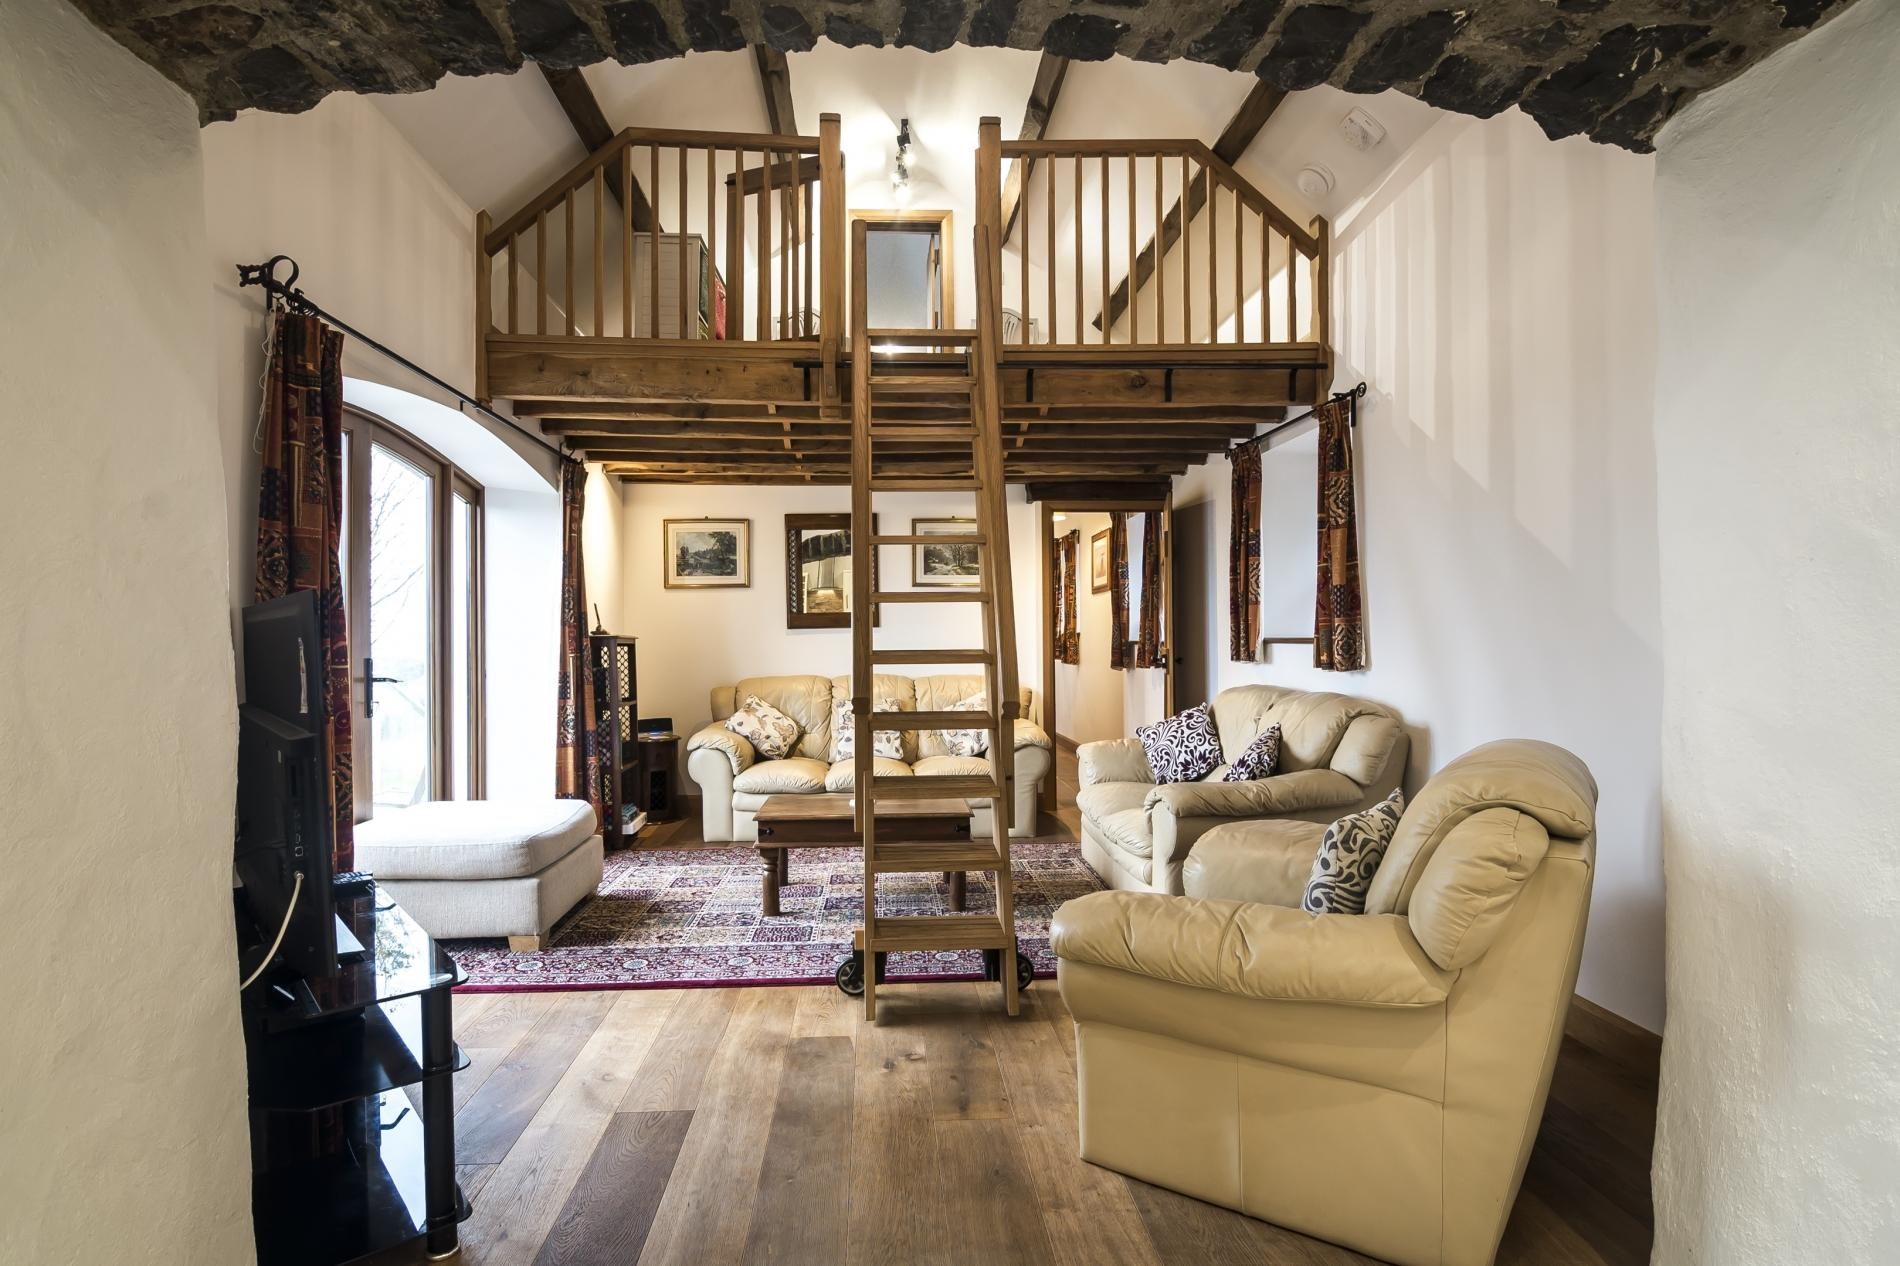 Orchard Cottage - Luxurious Barn Conversion - Beavers Hill 3